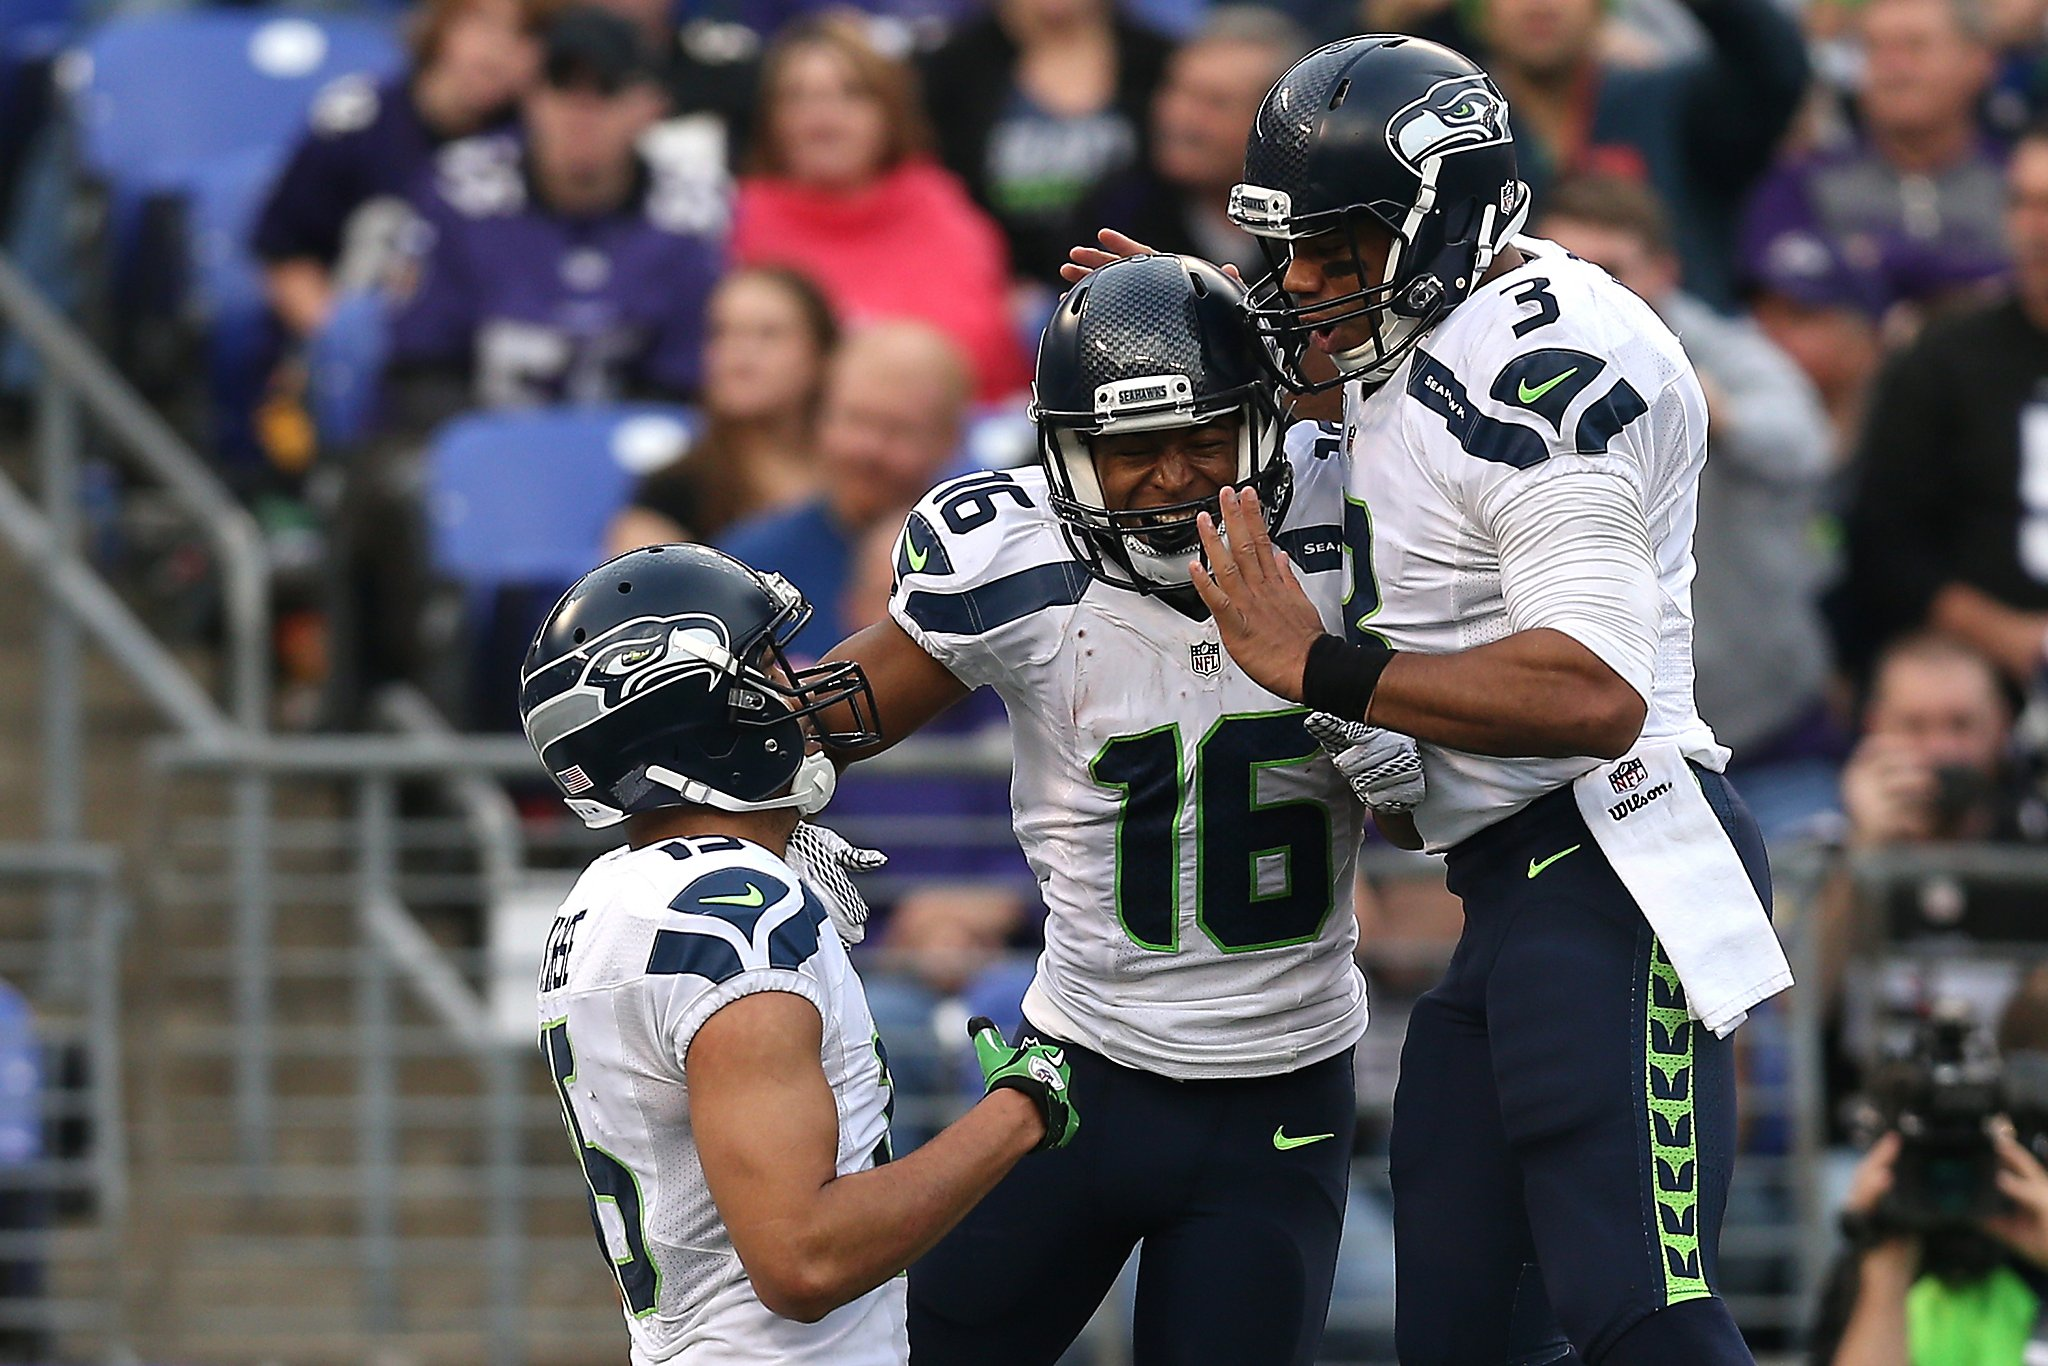 b8e2f7e44 Russell Wilson throw 5 TD passes in Seahawks  costly win - SFGate